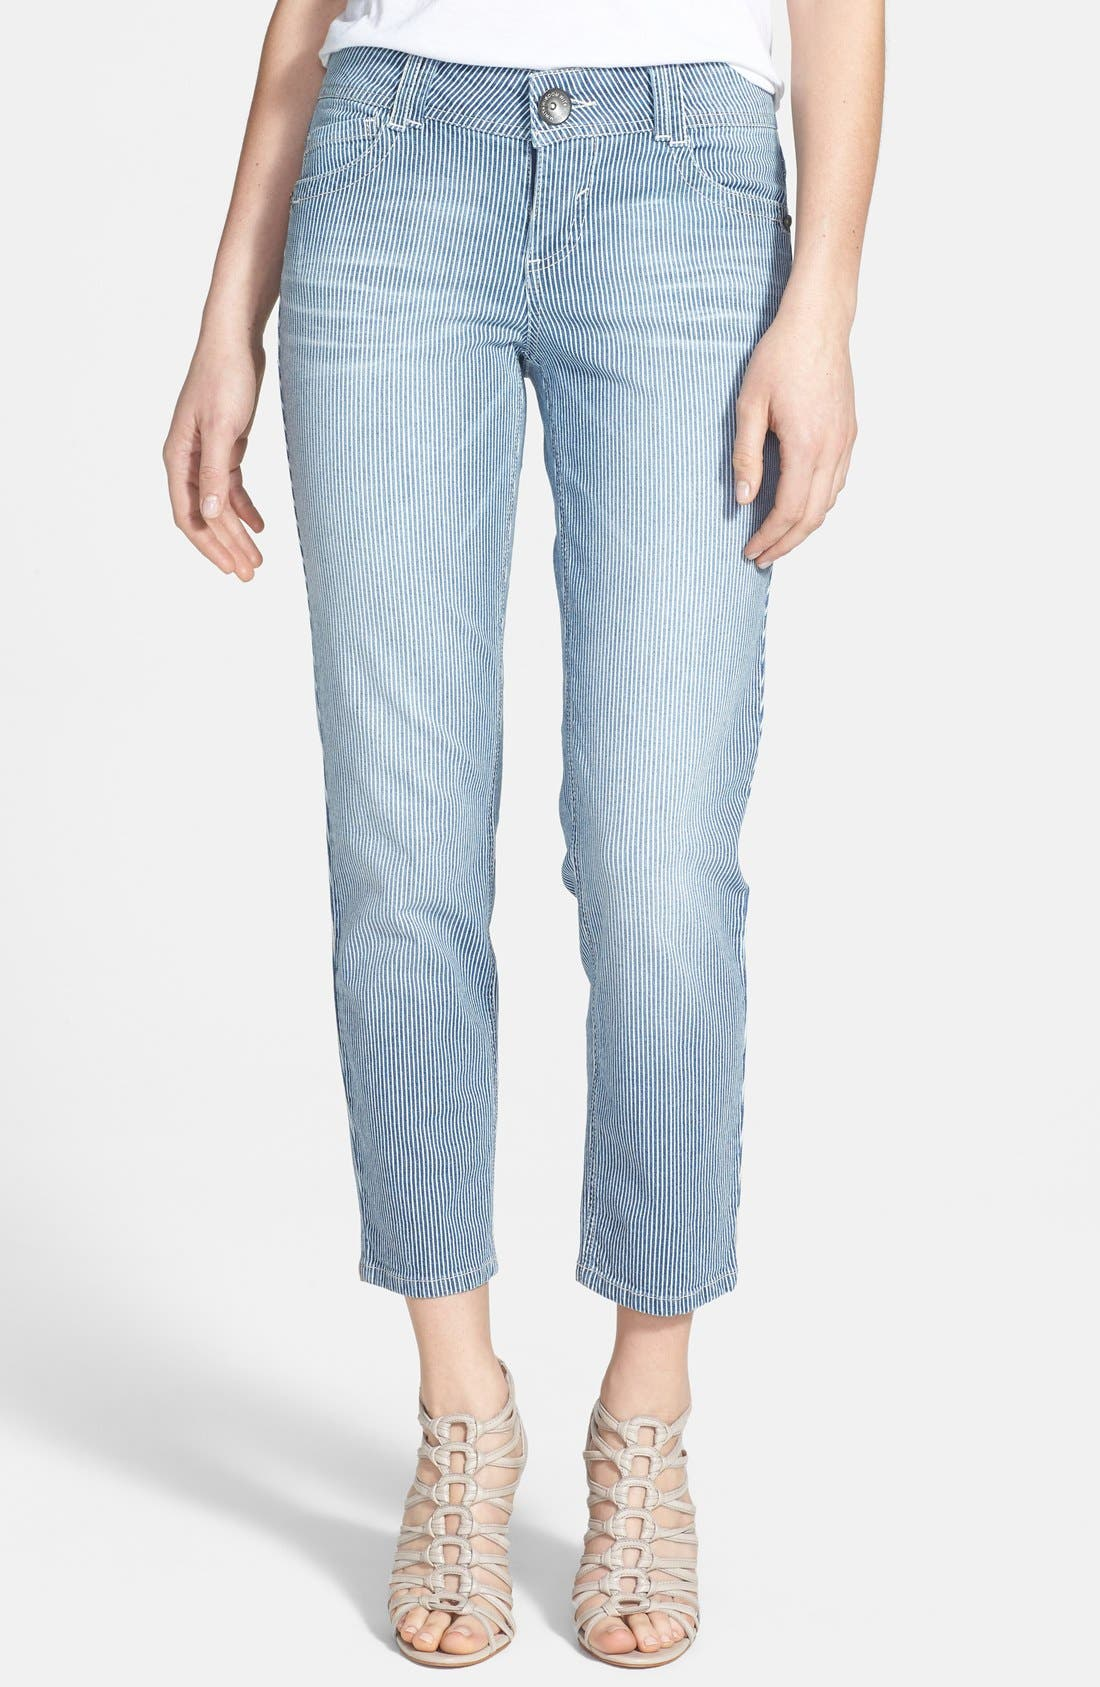 Alternate Image 1 Selected - Wit & Wisdom Stretch Ankle Skinny Jeans (Railroad) (Nordstrom Exclusive)